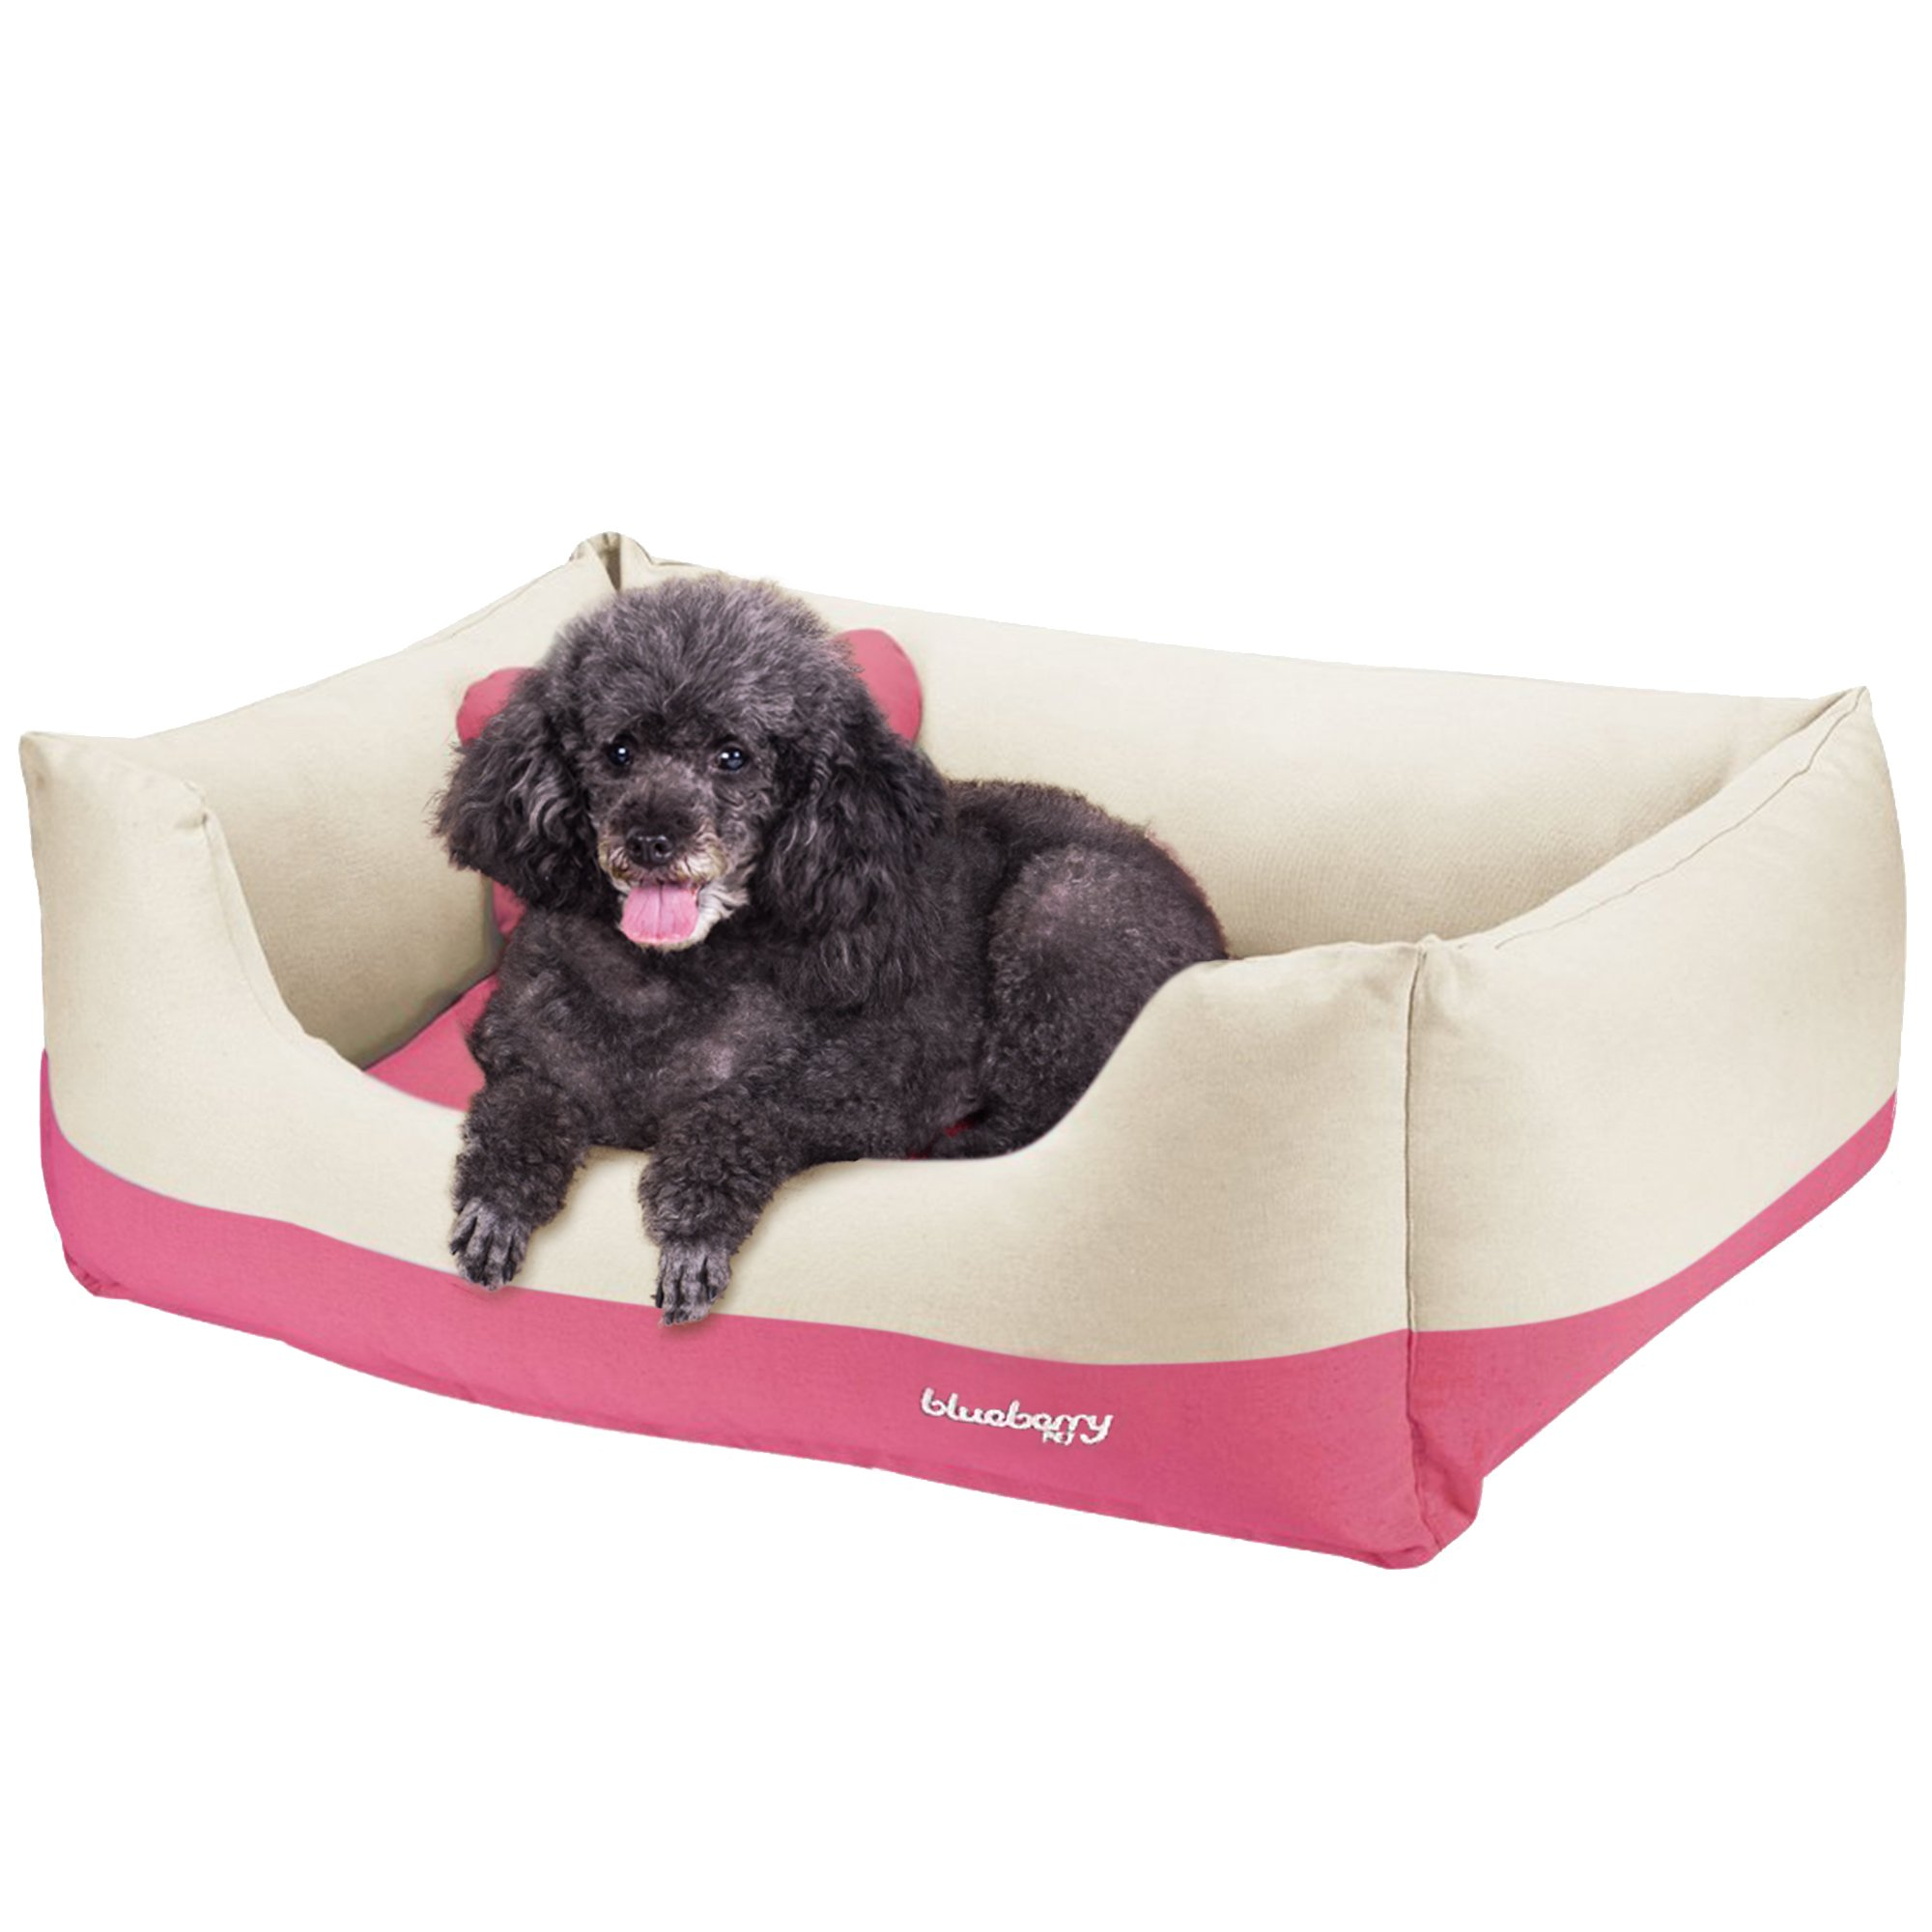 Blueberry Pet Heavy Duty Cotton Linen Blended Canvas Overstuffed Cuddler Bolster Lounge Dog Bed, Removable & Washable Cover w/YKK Zippers, 34'' x 24'' x 12'', 11 Lbs, Baby Pink & Beige Color-block